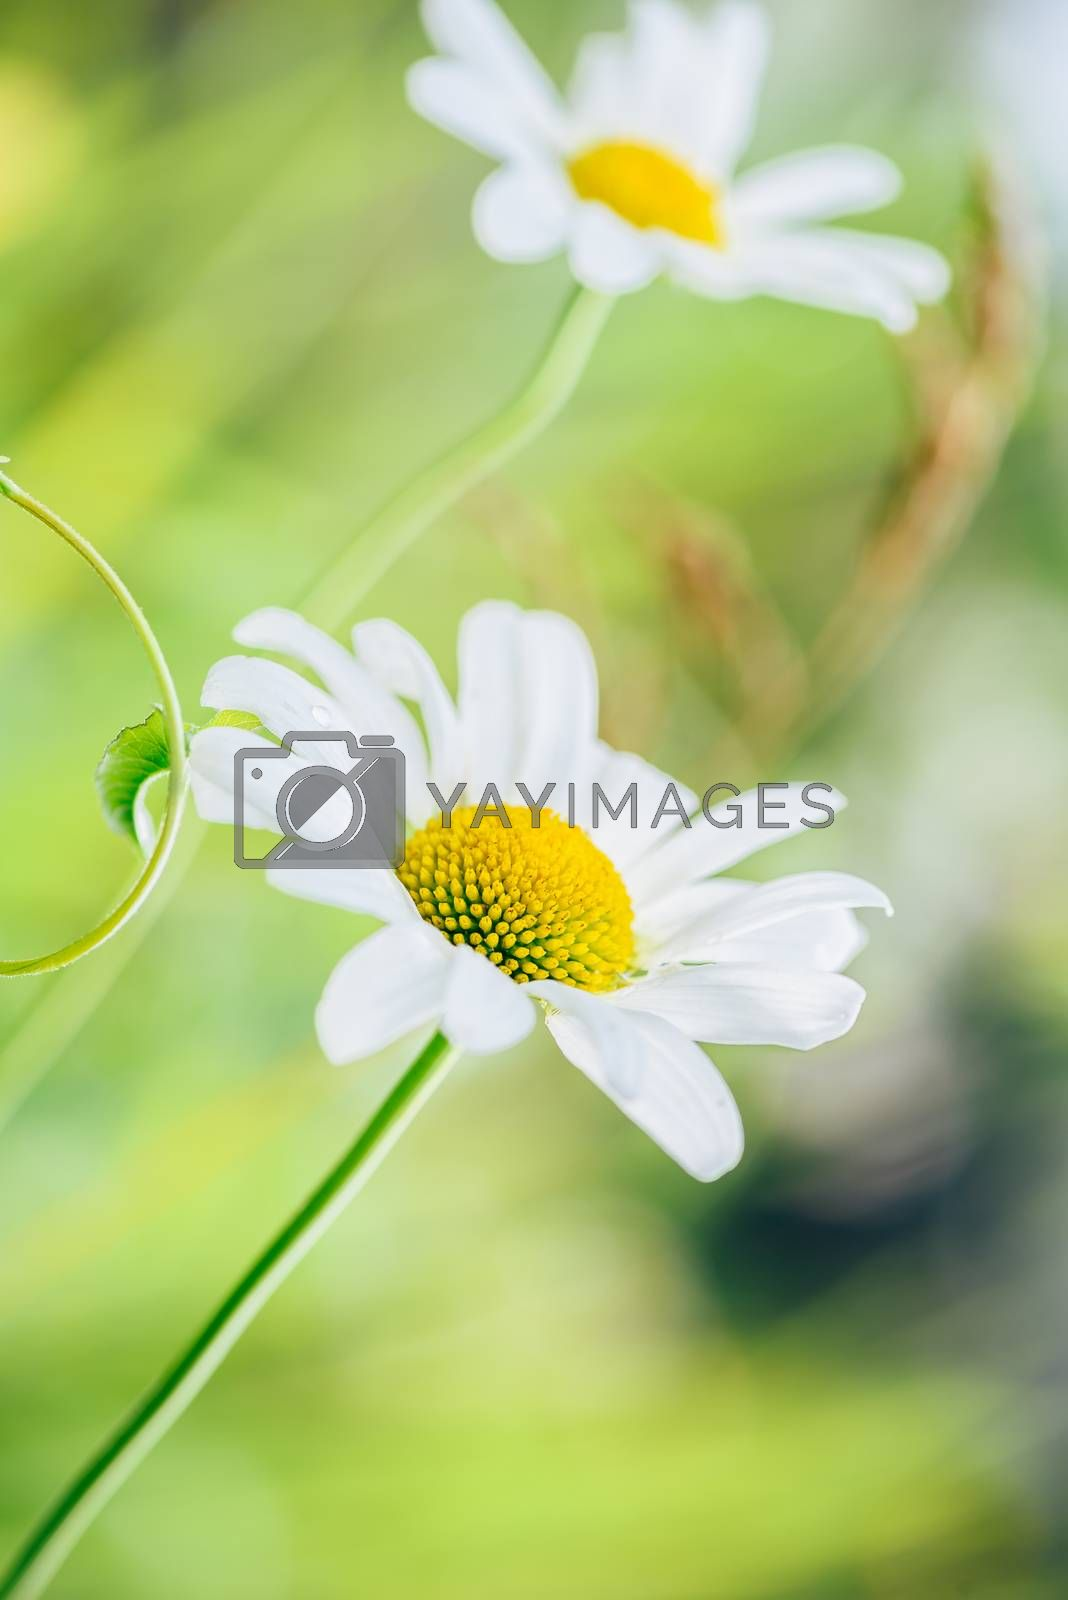 Royalty free image of Meadow Daisy Flower at Sunny Day. by Seva_blsv